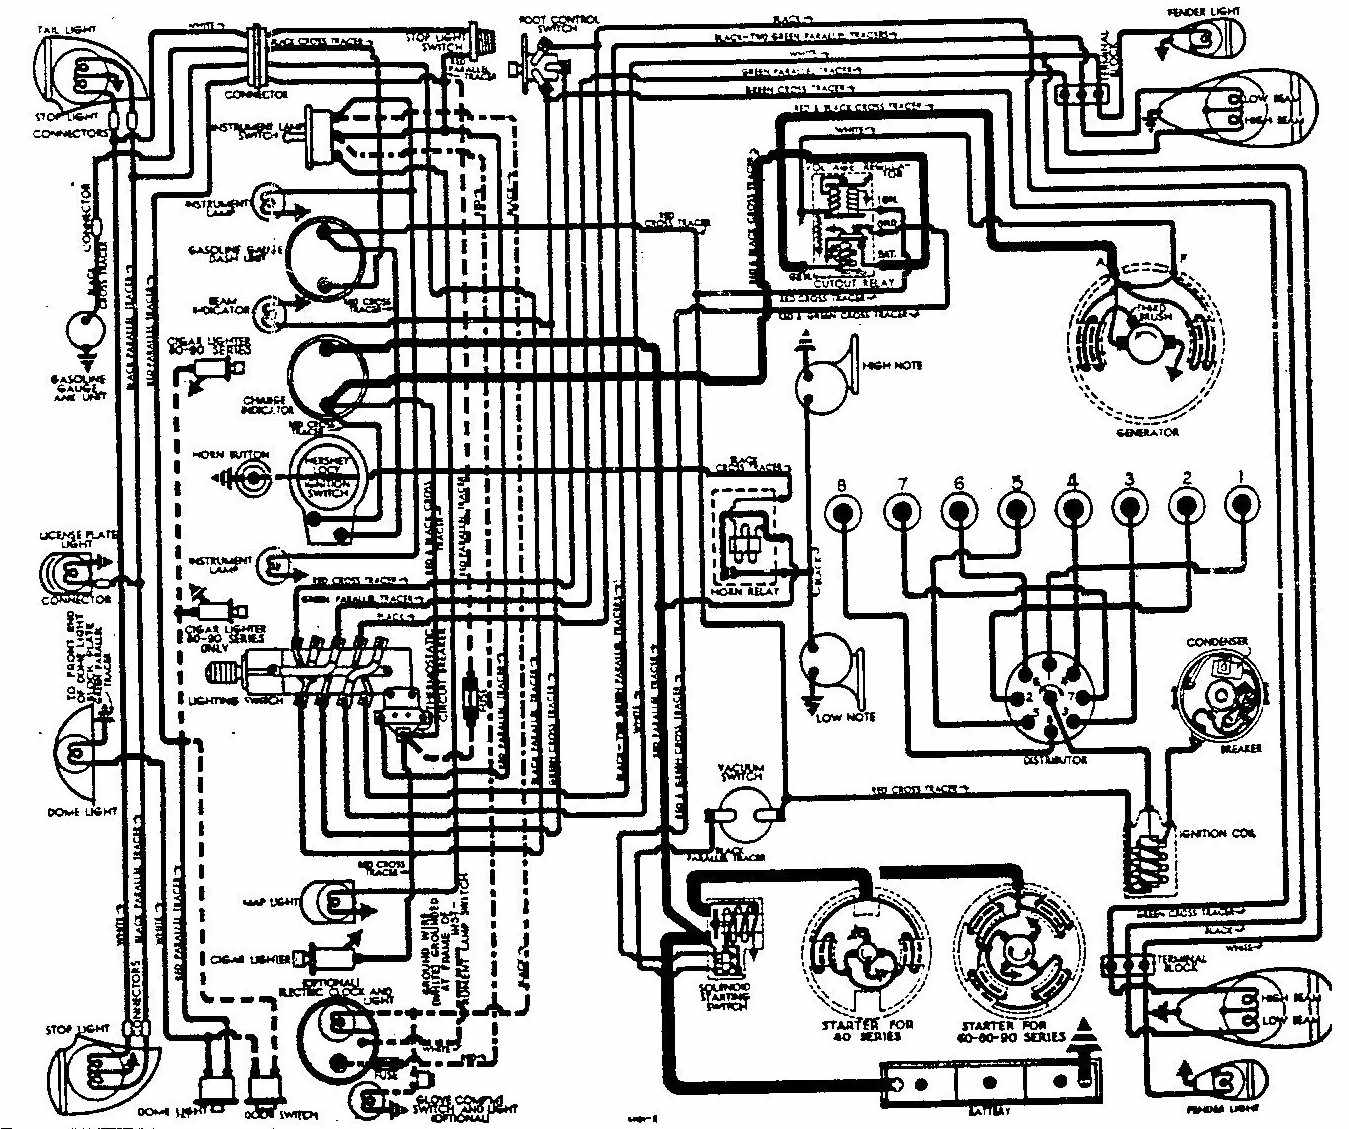 Buick Roadmaster Electrical Wiring Diagram on 1996 Buick Roadmaster Wiring Diagram